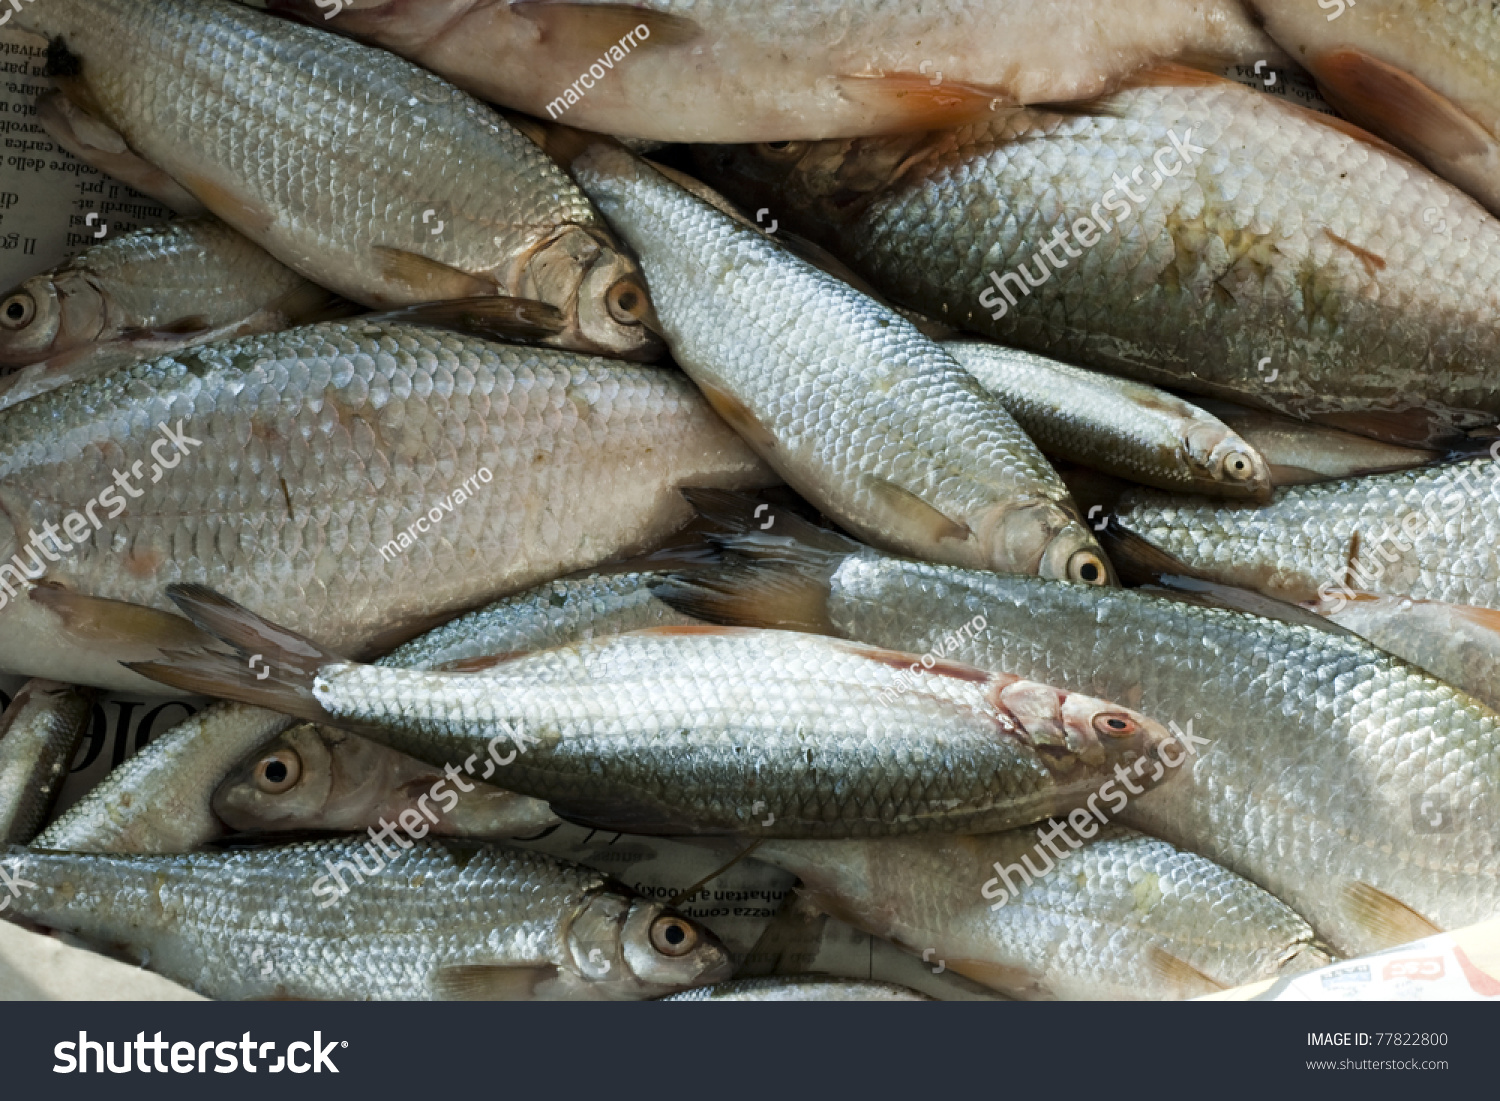 Background Full Of Small Edible Freshwater Fish Alburnus